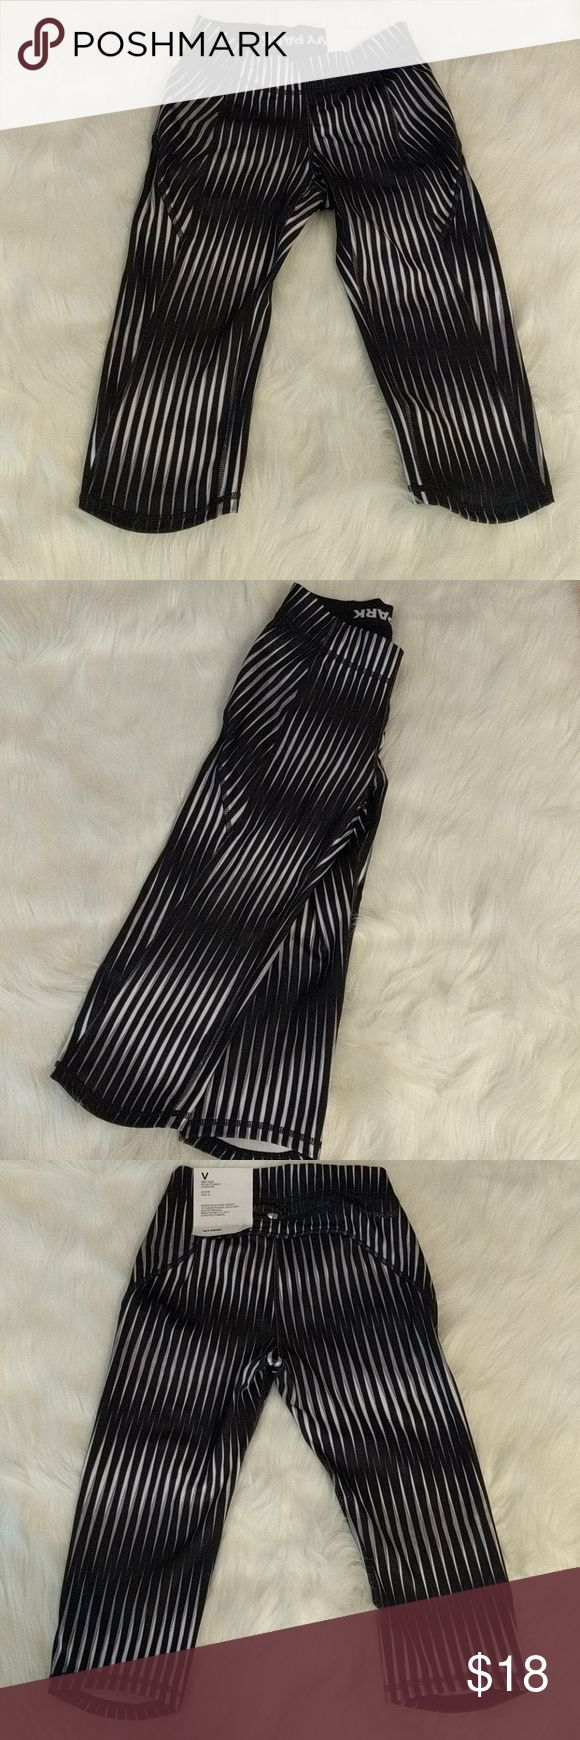 Ivy Park mid rise sculpted legging Black, Gray and White inner contour short that smooths and supports. Quick drying, breathable 4-way stretch fabric. Ivy Park Pants Capris